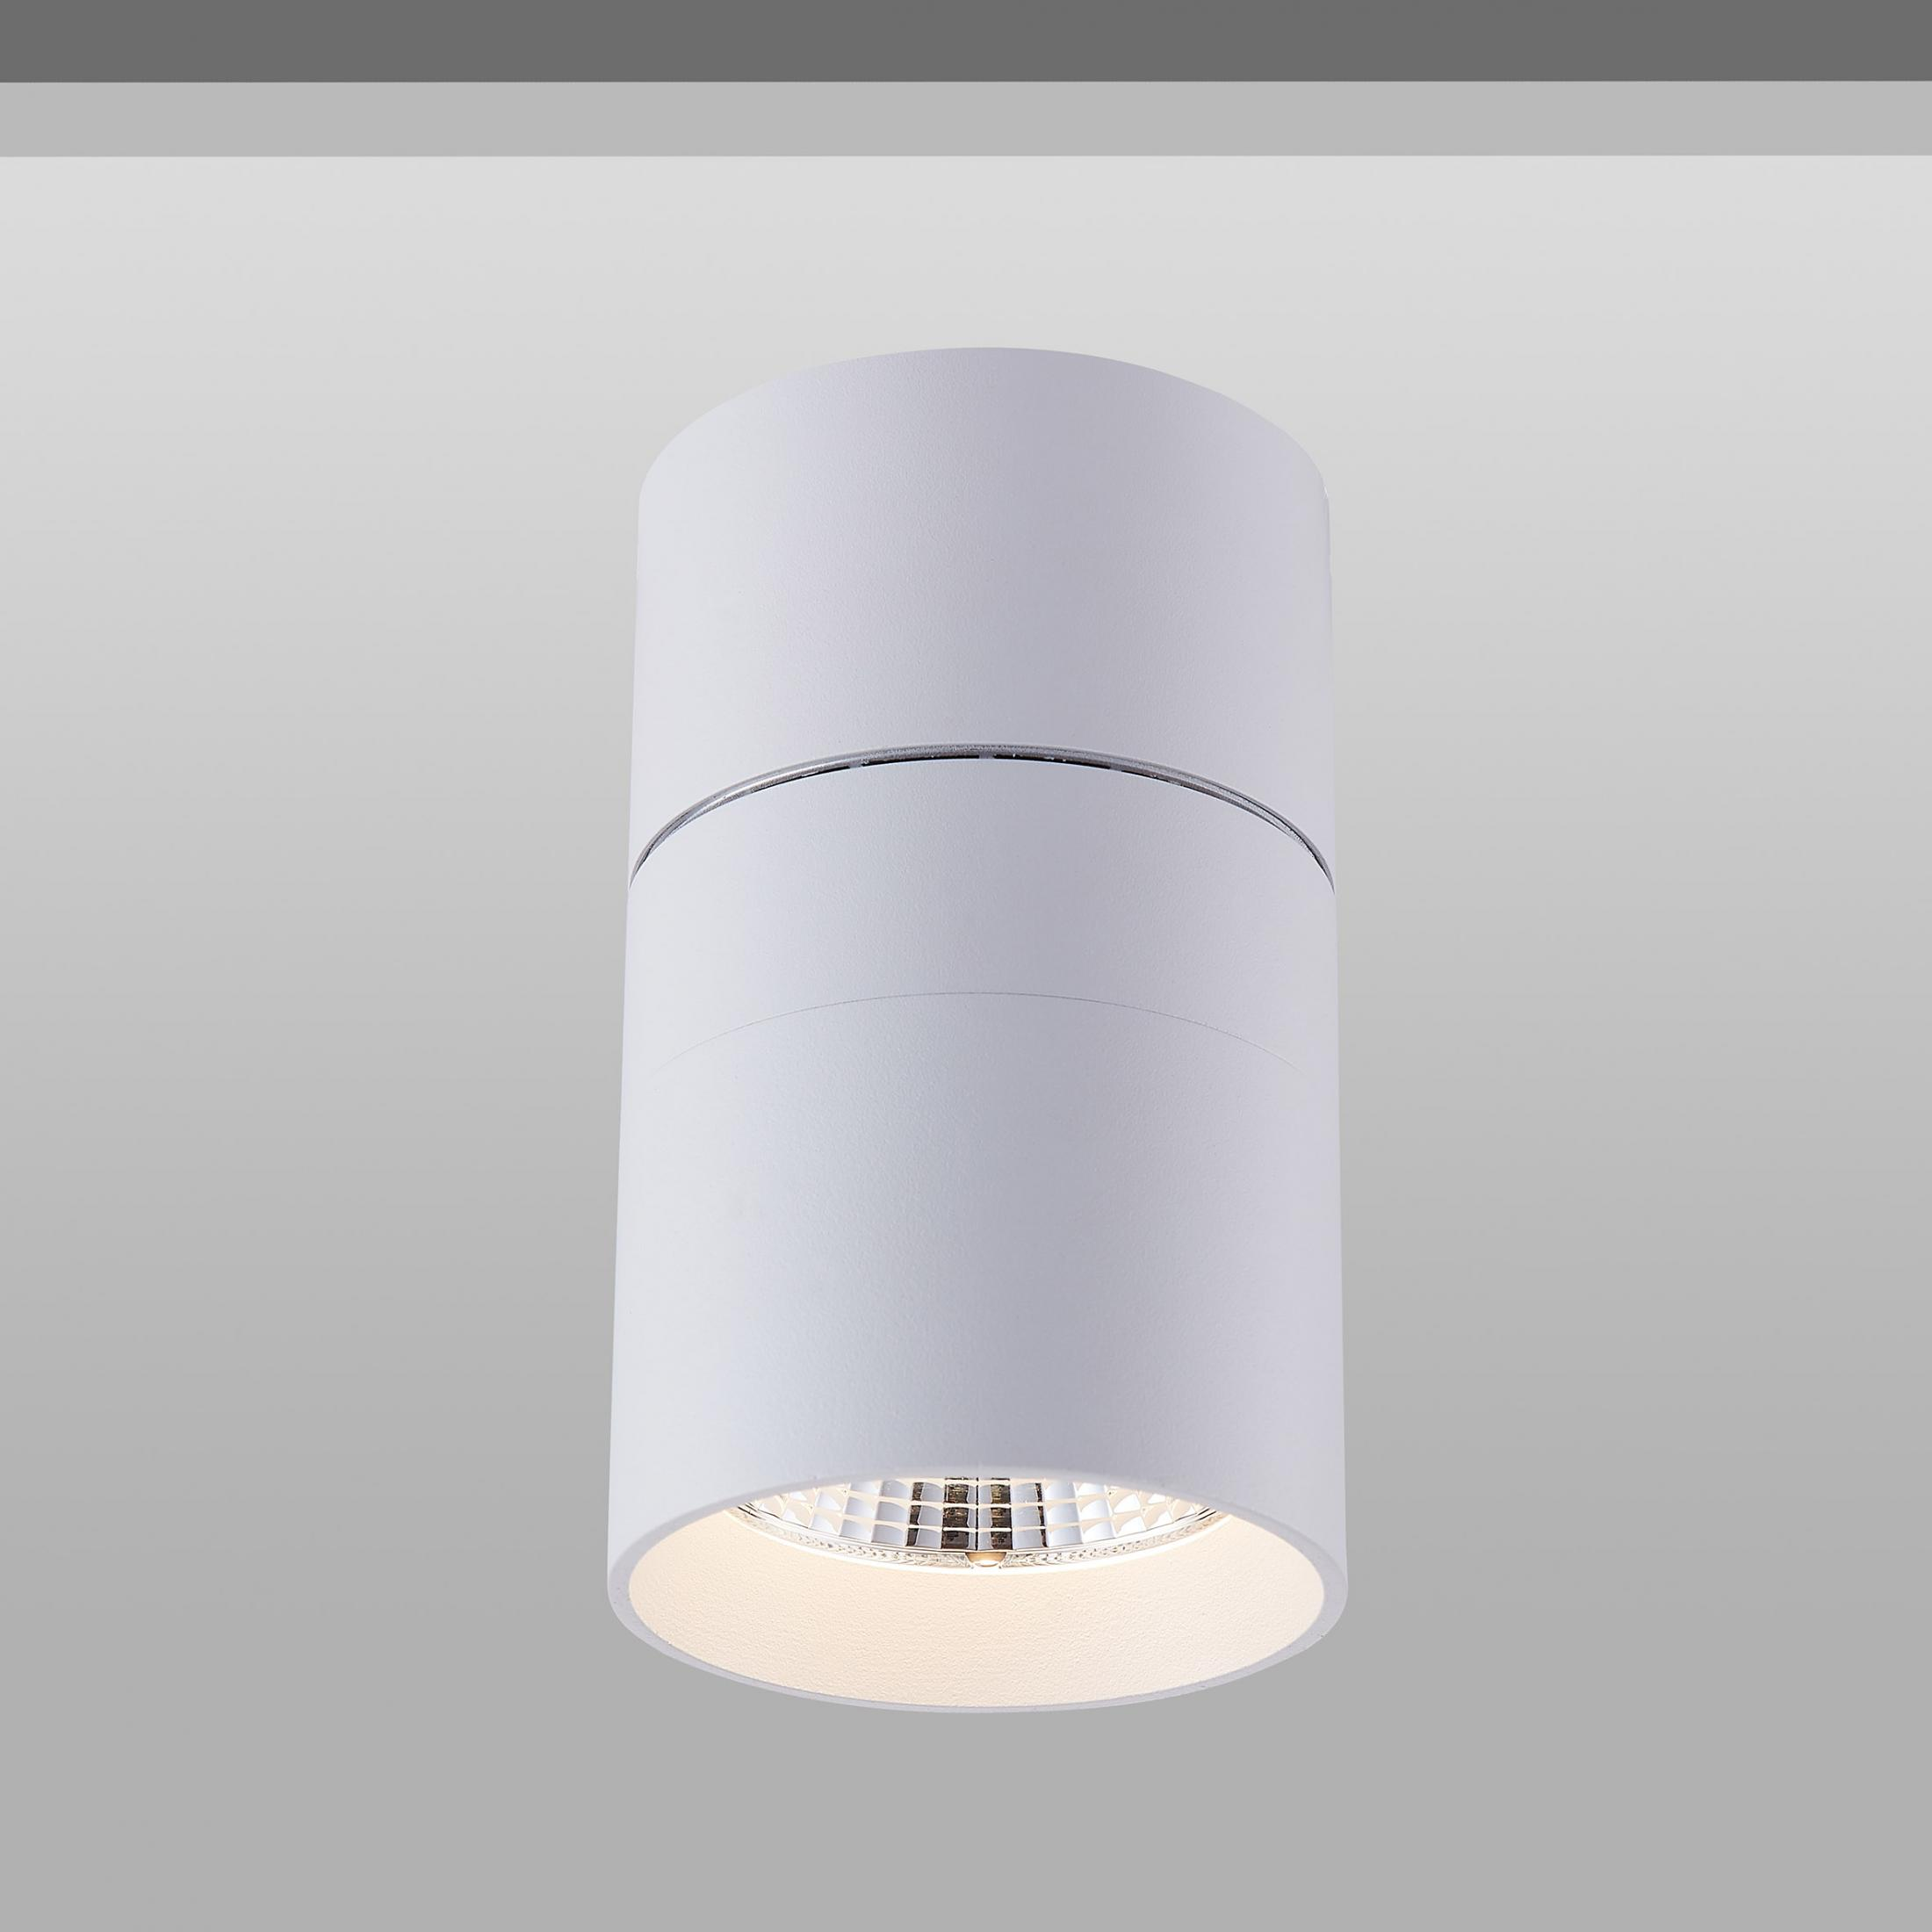 indoor 10W led ceiling lights